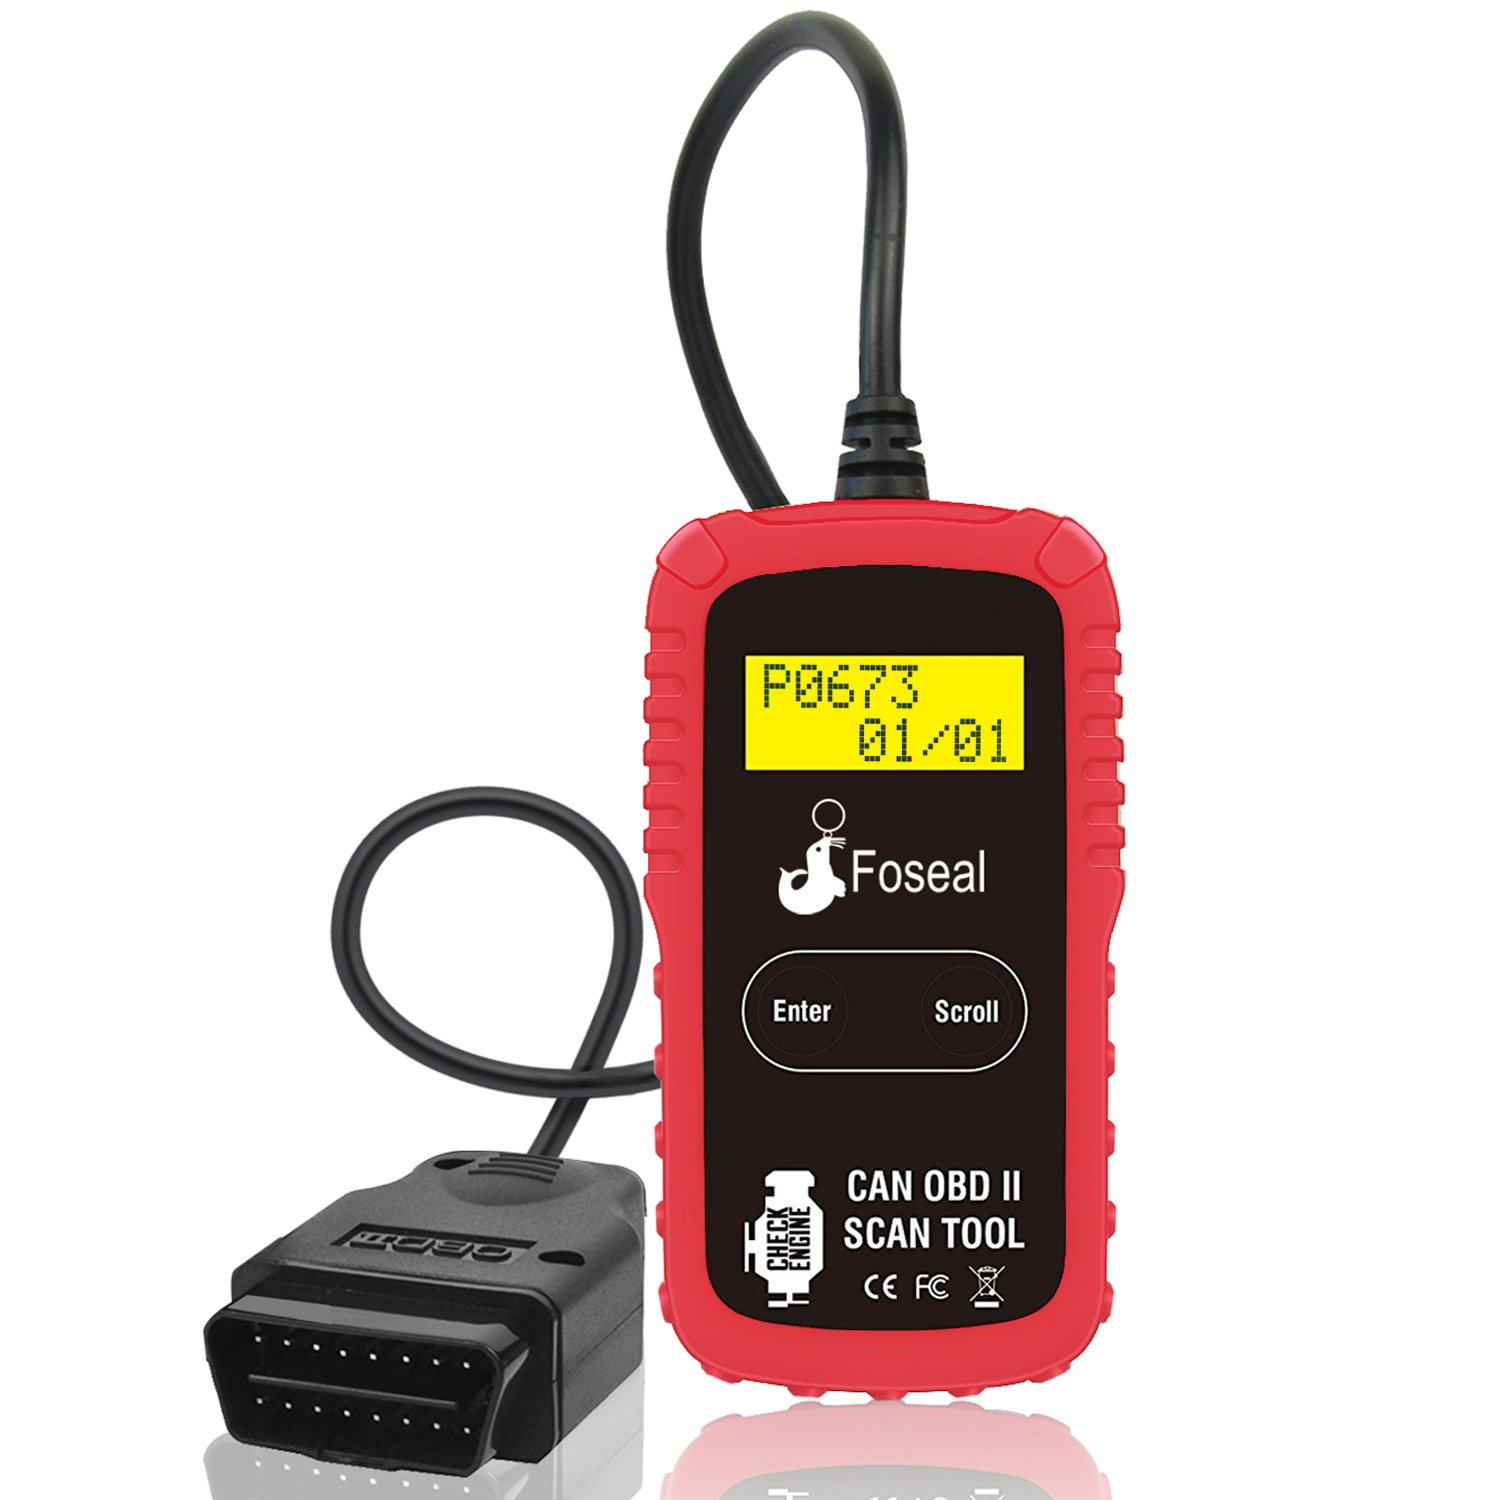 Amazon Obd2 Scanner Obd2 Scan Tool Foseal Car Code Reader Car